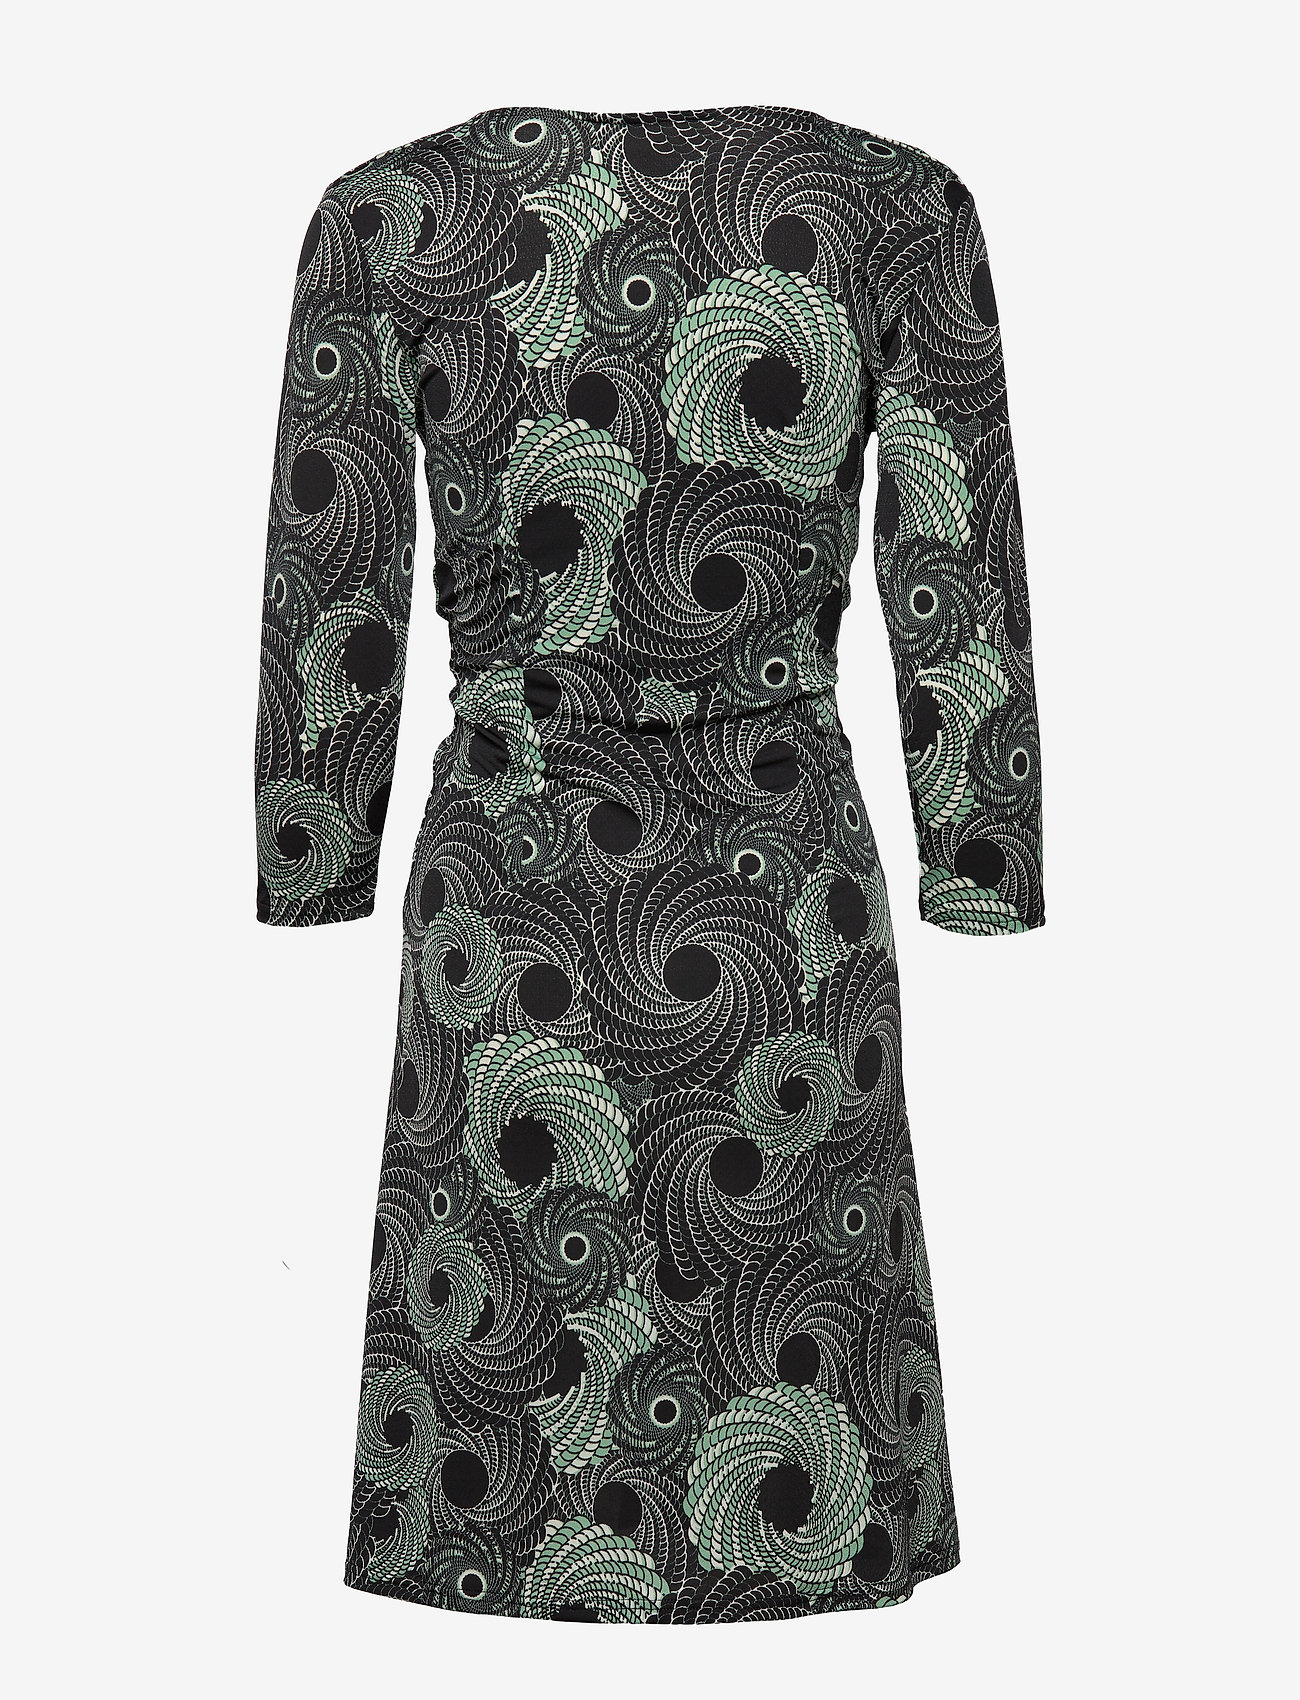 Dress (Granite Green) (87.50 €) - Ilse Jacobsen udU3J